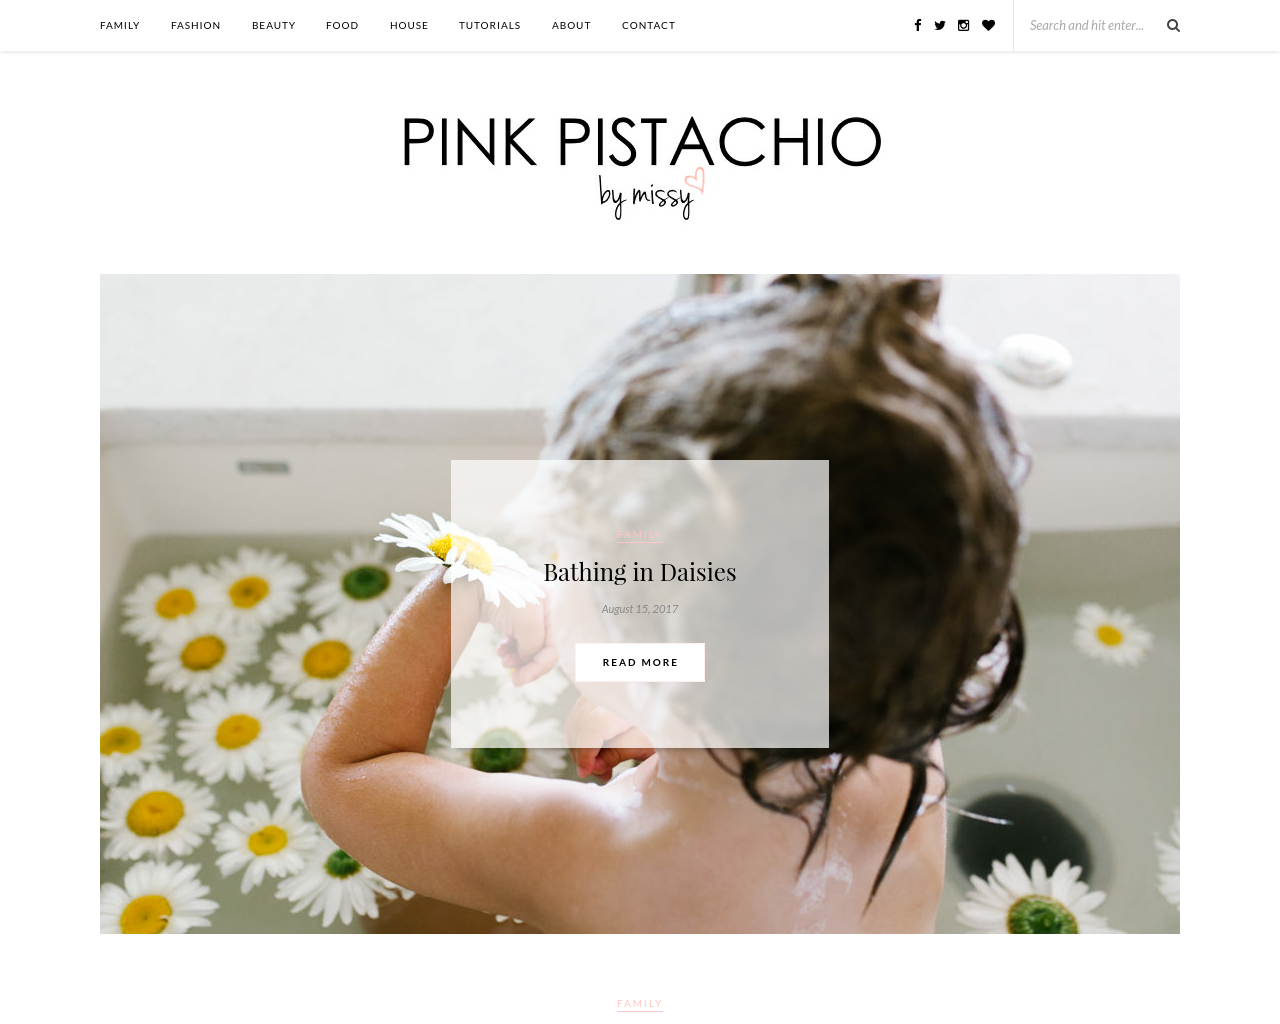 Pink-Pistachio-Advertising-Reviews-Pricing